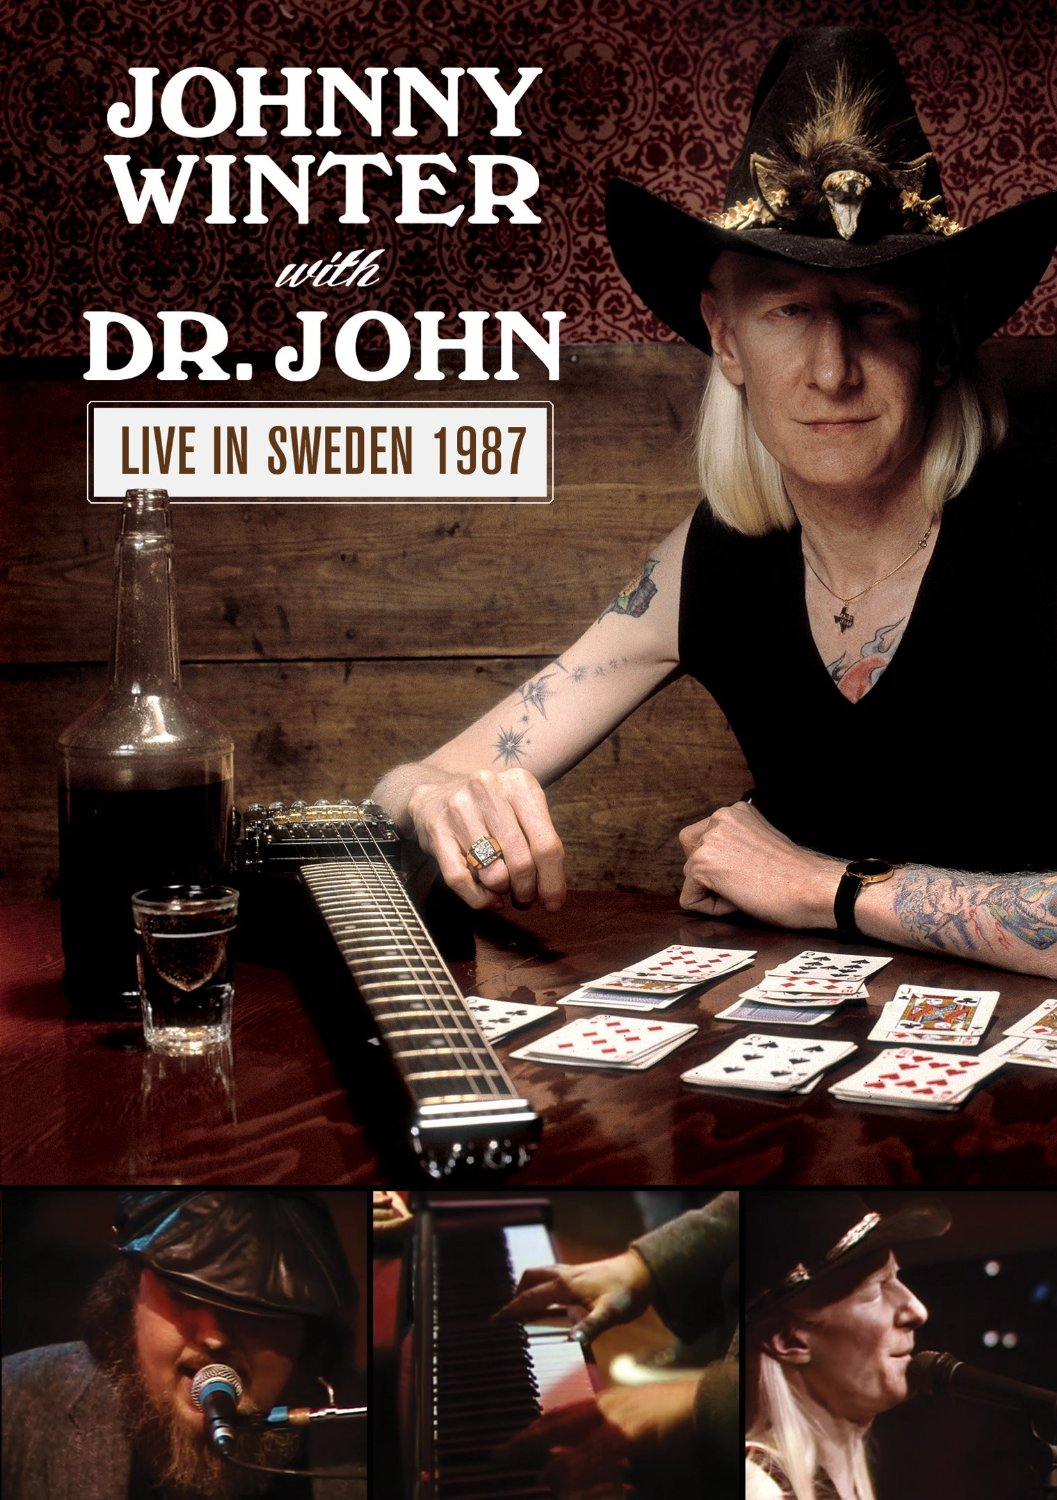 Johnny Winter With Dr. John - Live In Sweden 1987 [DVD]